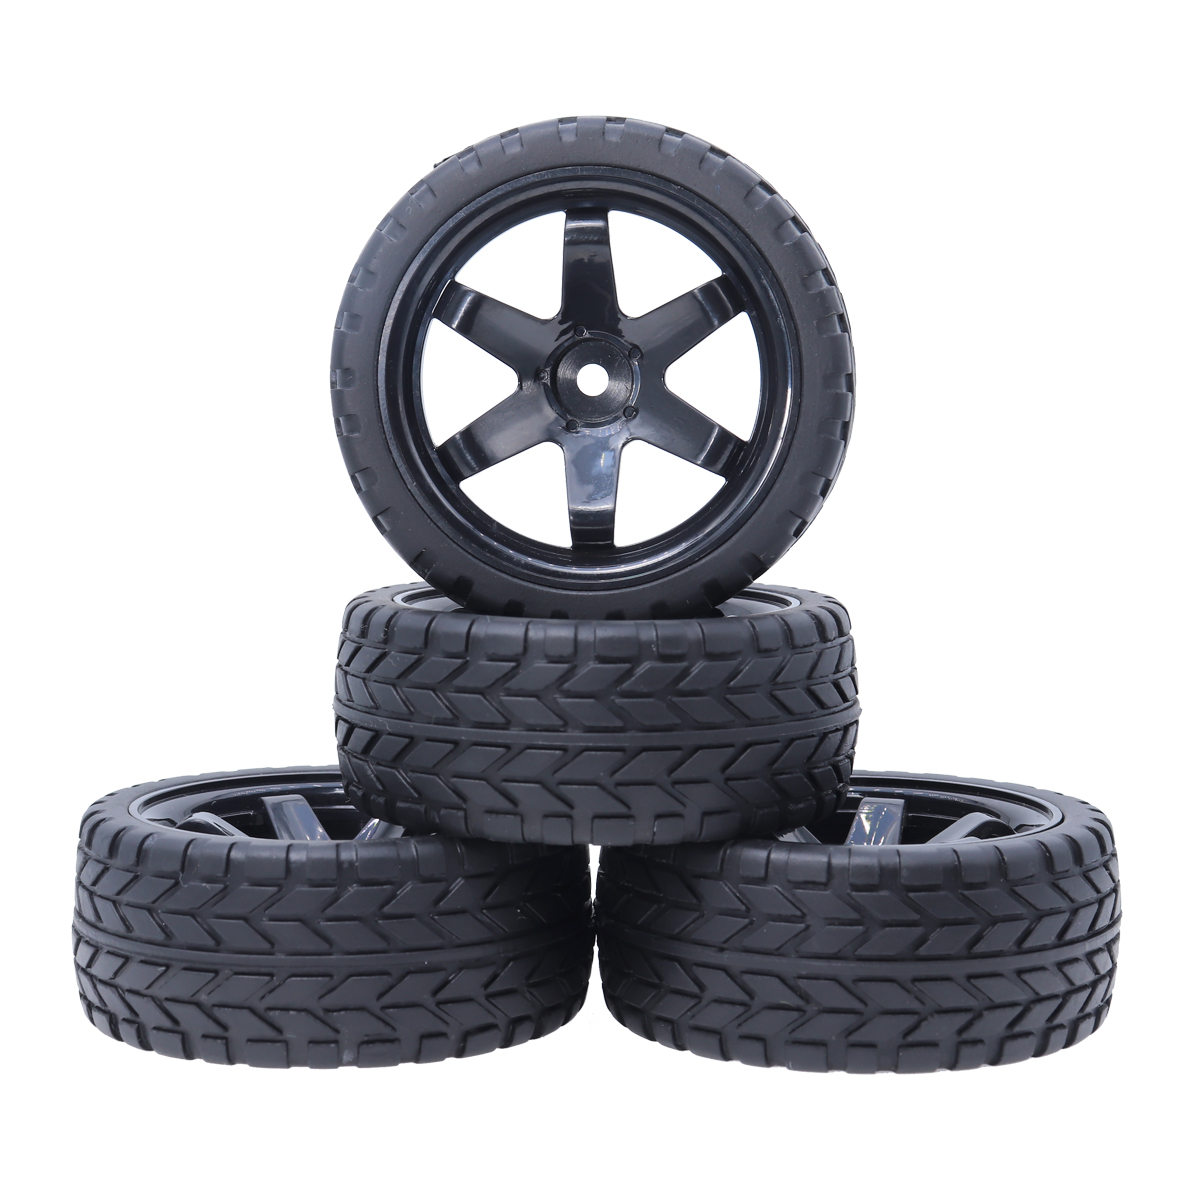 4Pcs 1/10 On Road Tires 64mm Tyres <font><b>6</b></font> <font><b>Spoke</b></font> 12mm <font><b>Wheel</b></font> hub for 1:10 HSP HPI SXC10 RC4WD Traxxas On-Road Touring Car image